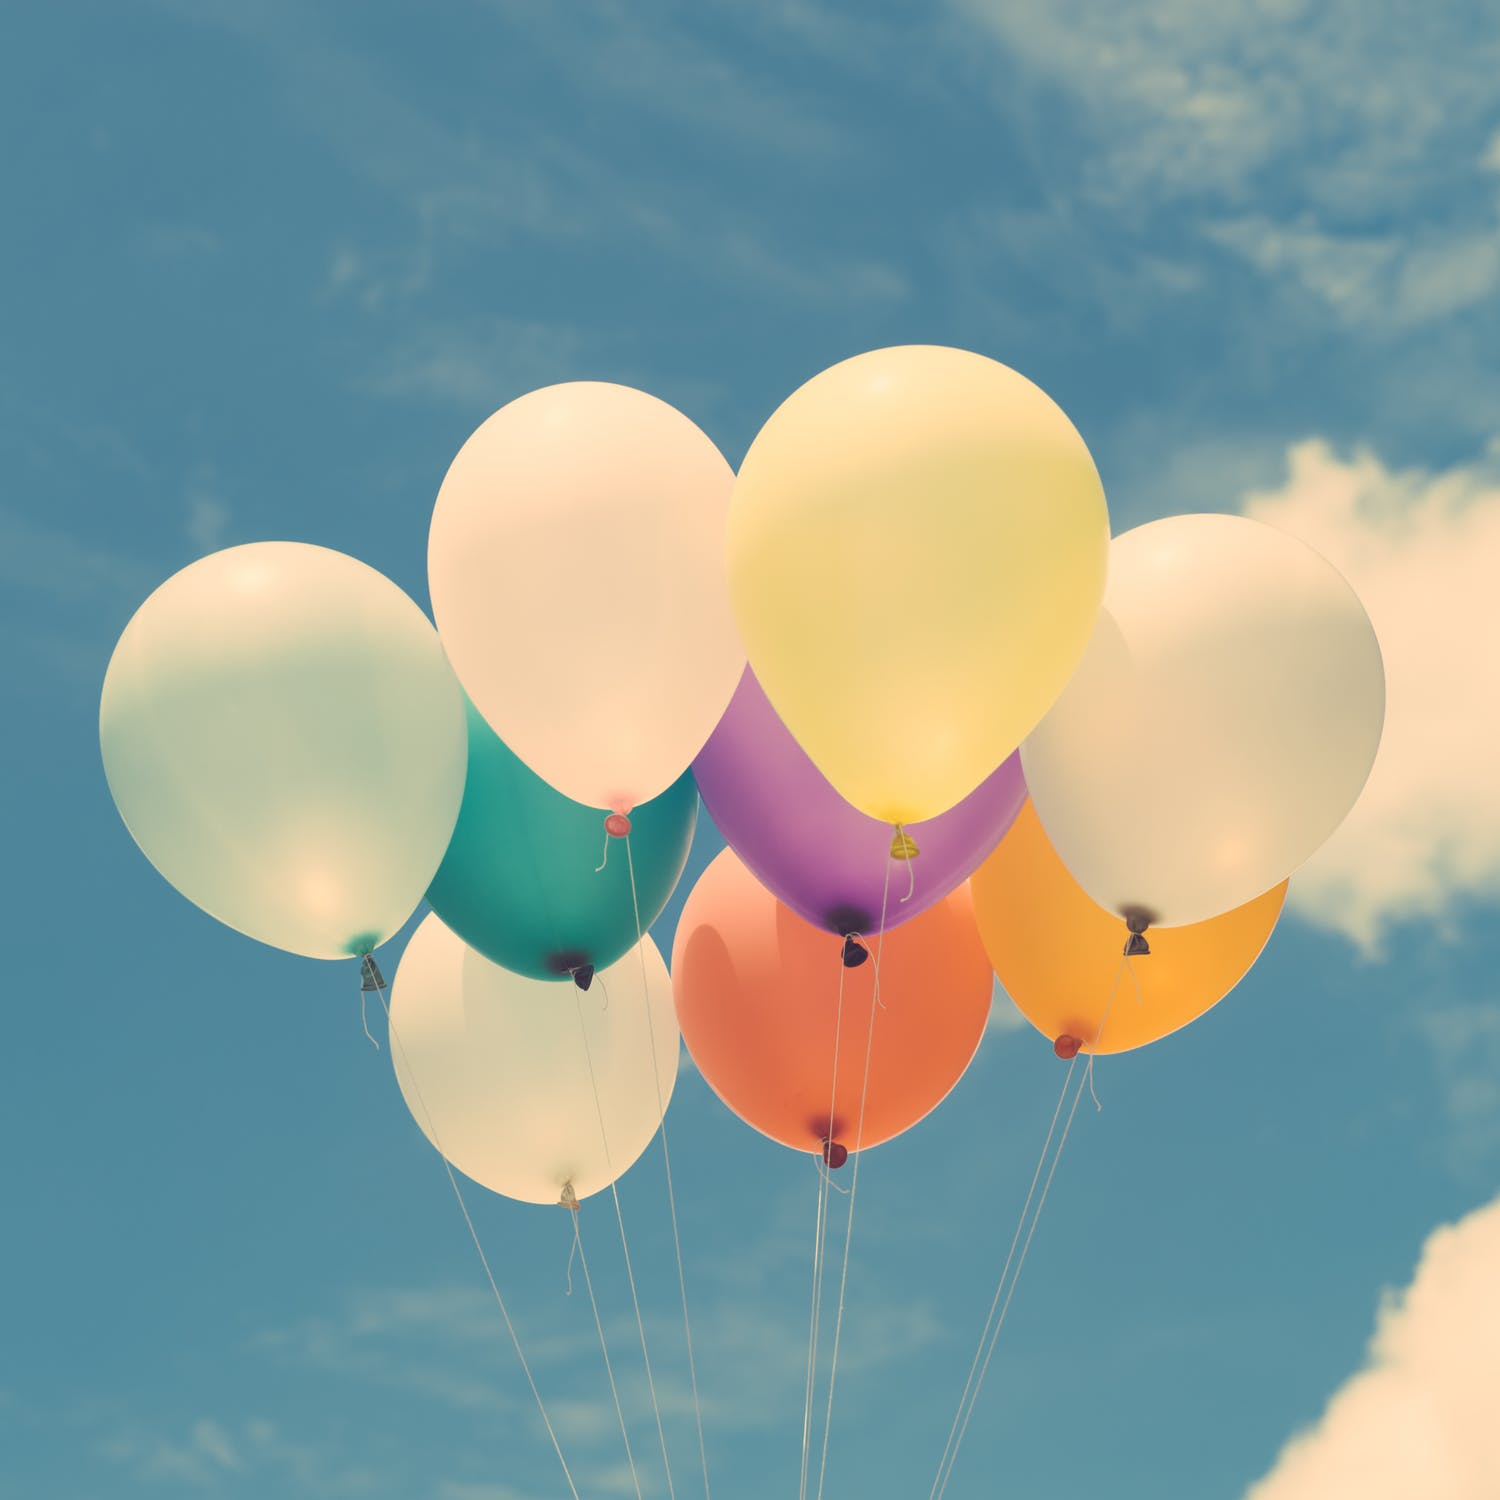 Hitting the Milestones: Balloons For Life's Biggest Events